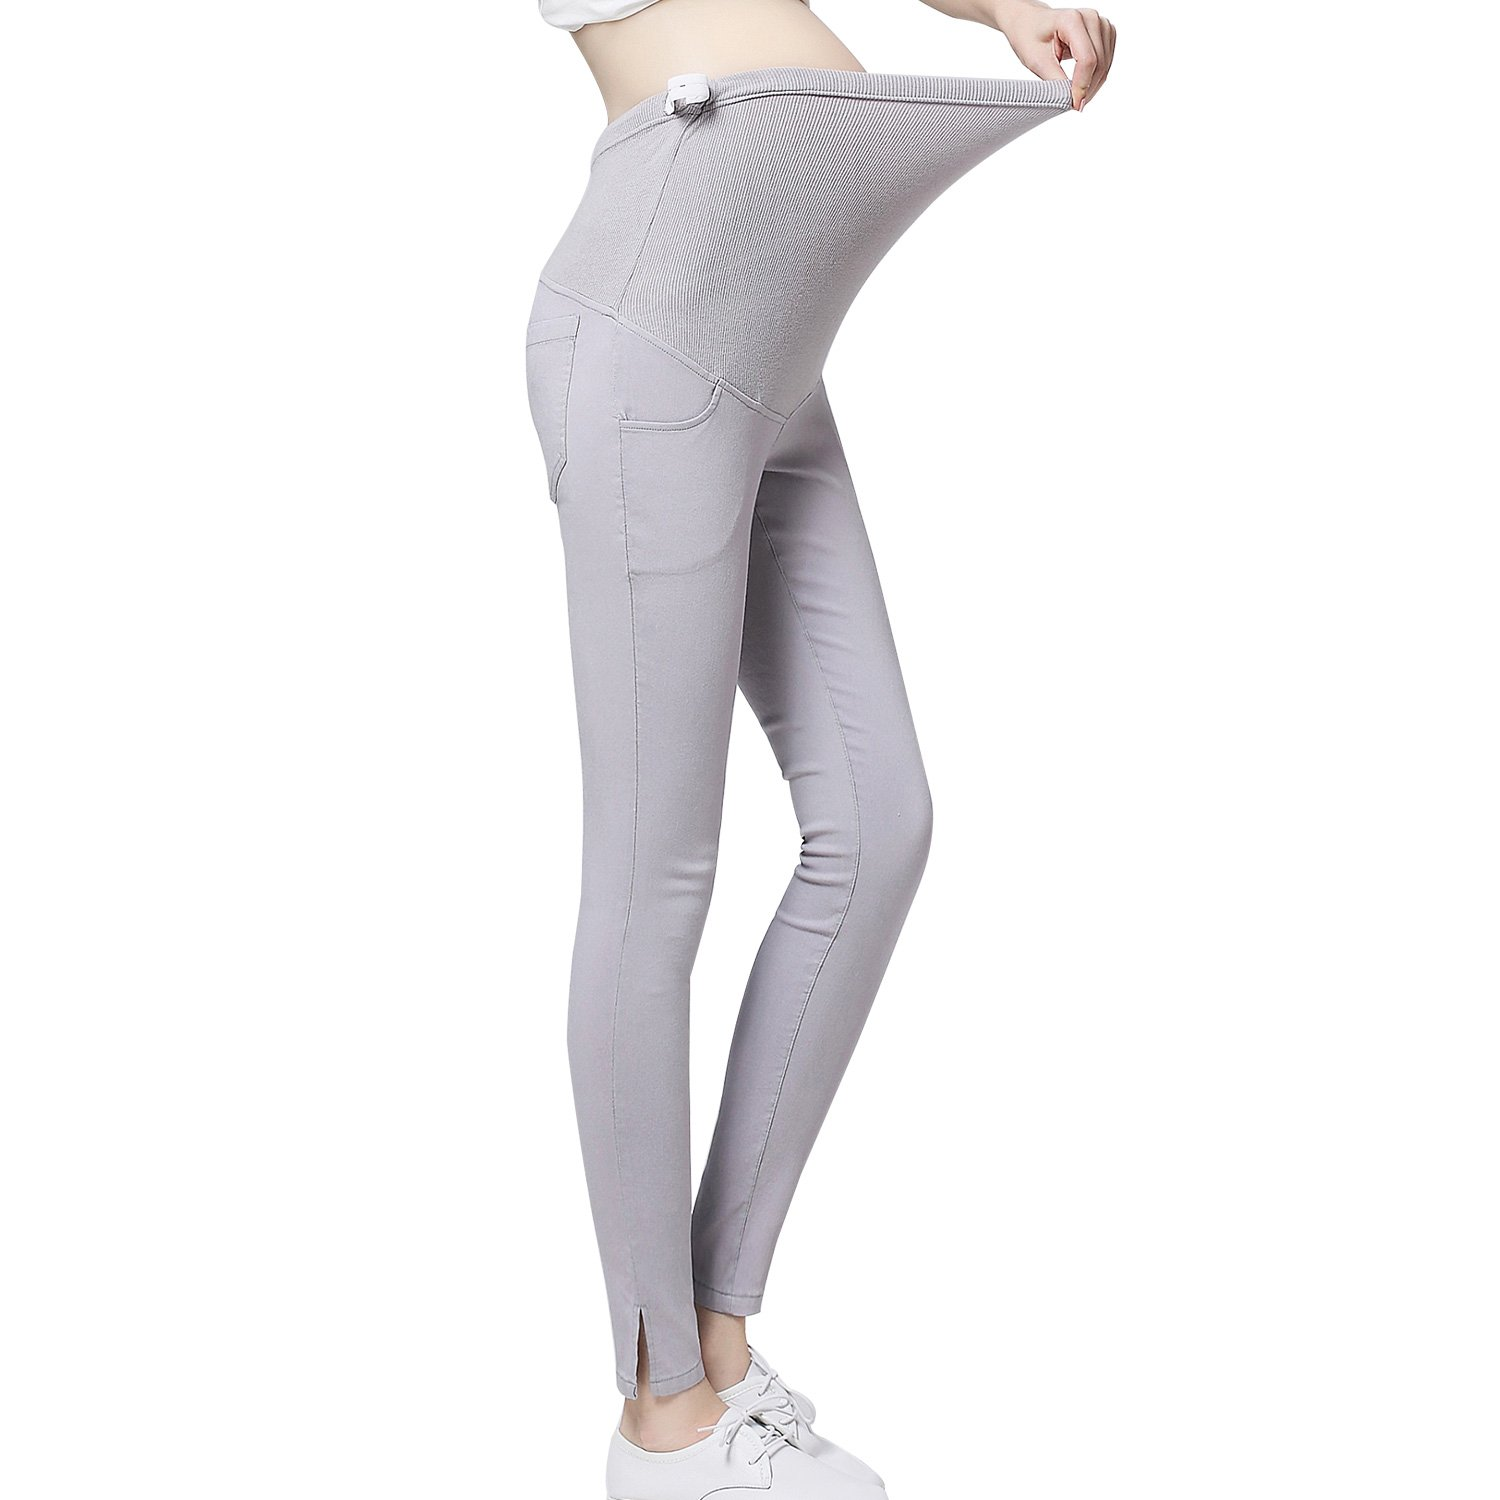 JOYNCLEON Pregnant Women Work Pants Stretchy Maternity Skinny Ankle Trousers Slim for Women (Label XL = US 10-12 fit for Hip 36.6'', Light Grey)